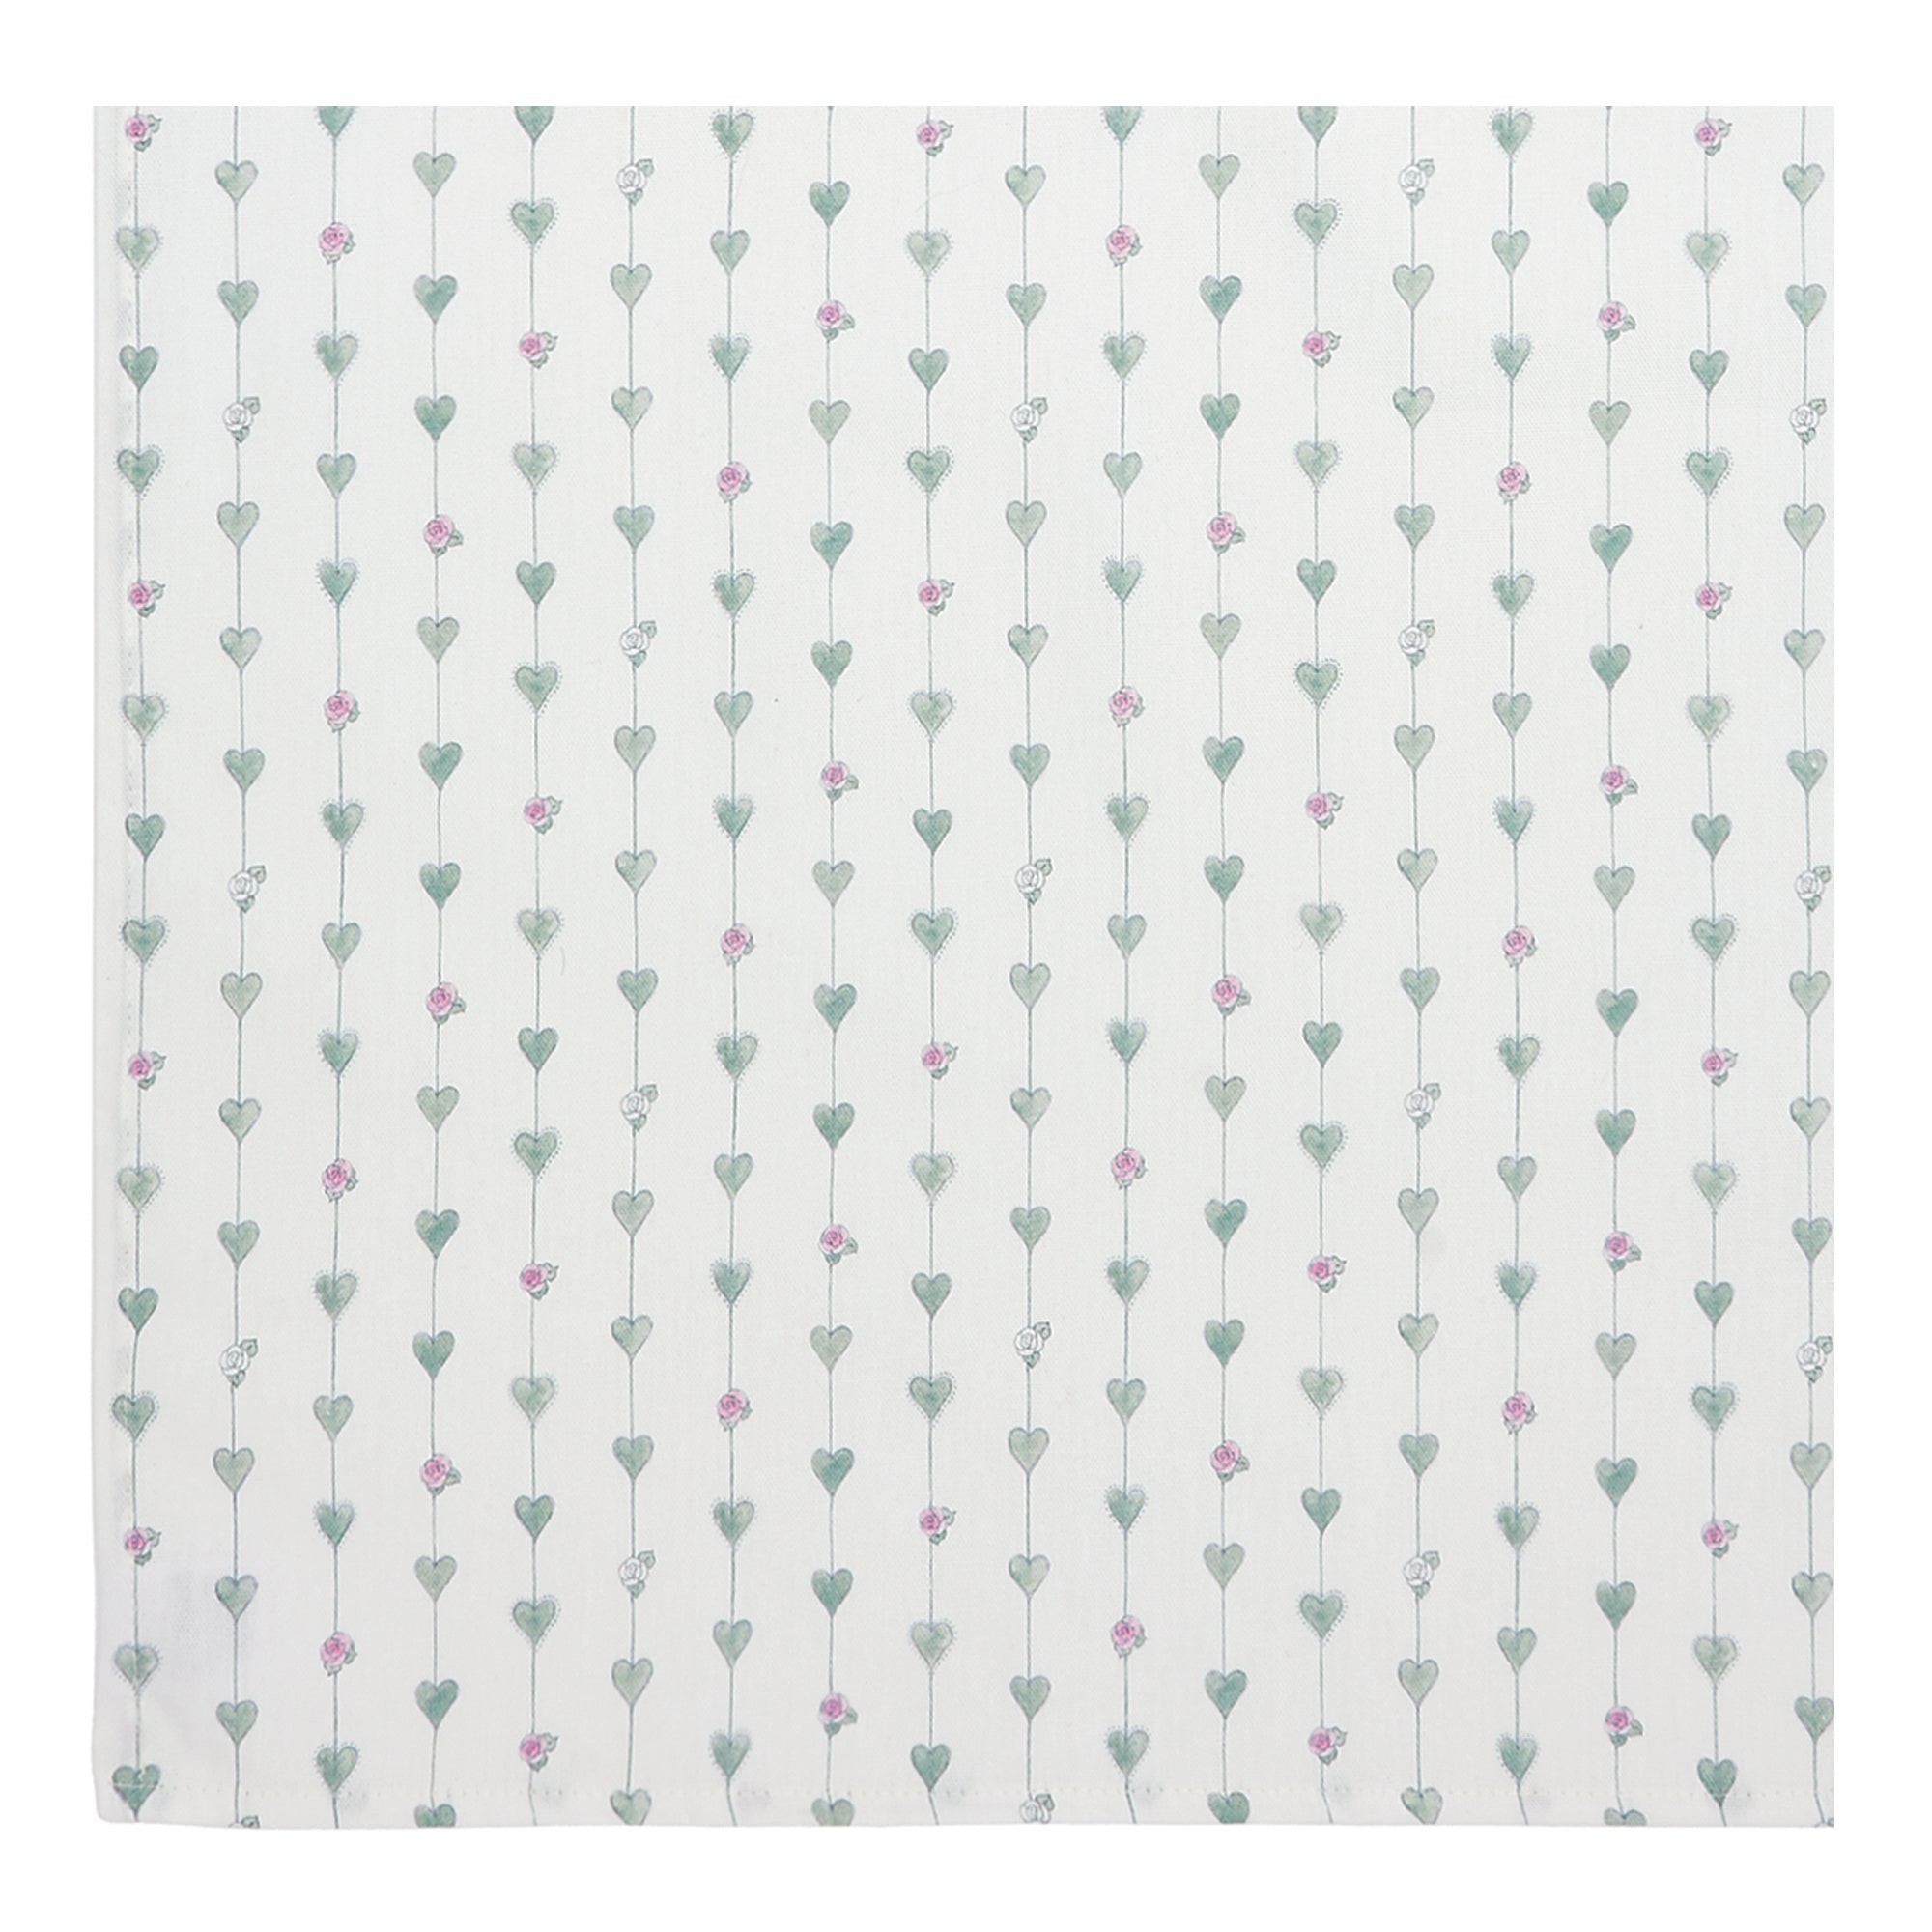 Sage Green Hearts & Roses Napkins - Set of 2